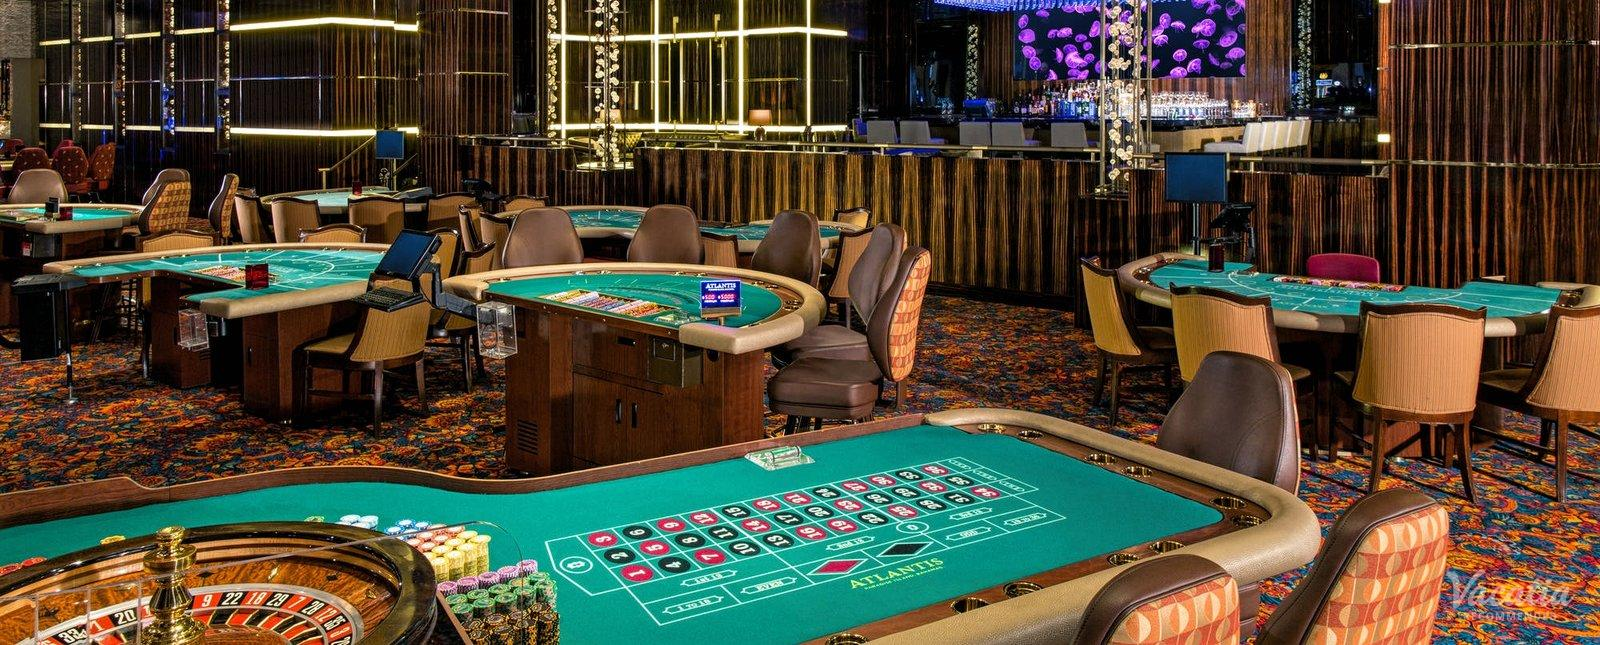 Atlantis resort casino nassau how casino affects the economy of bahamas